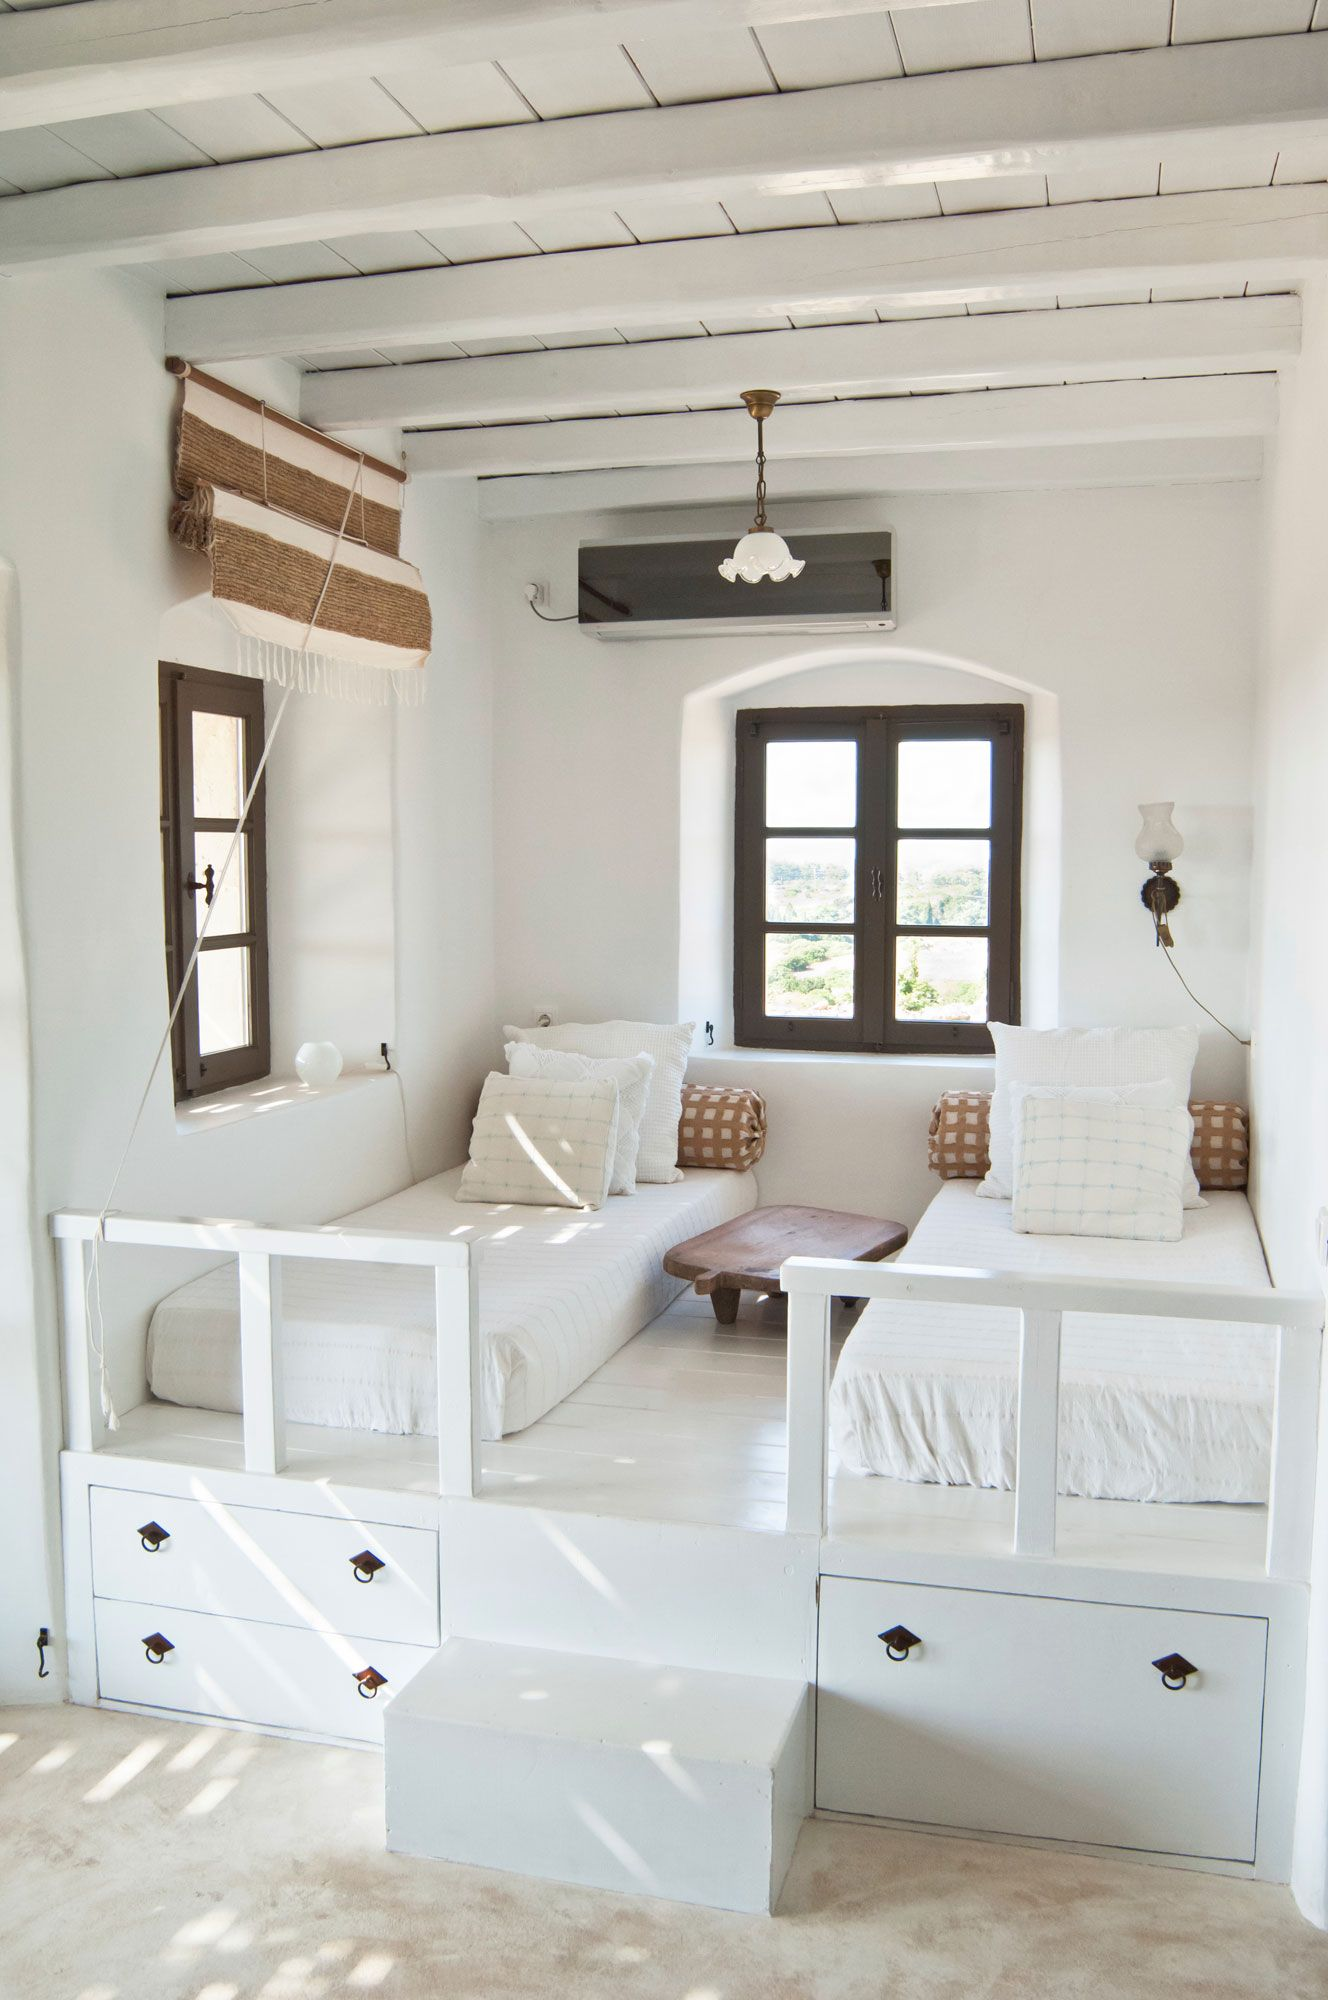 Ideas para decorar una casa en la playa hogarmania - Decoracion casa barata ...